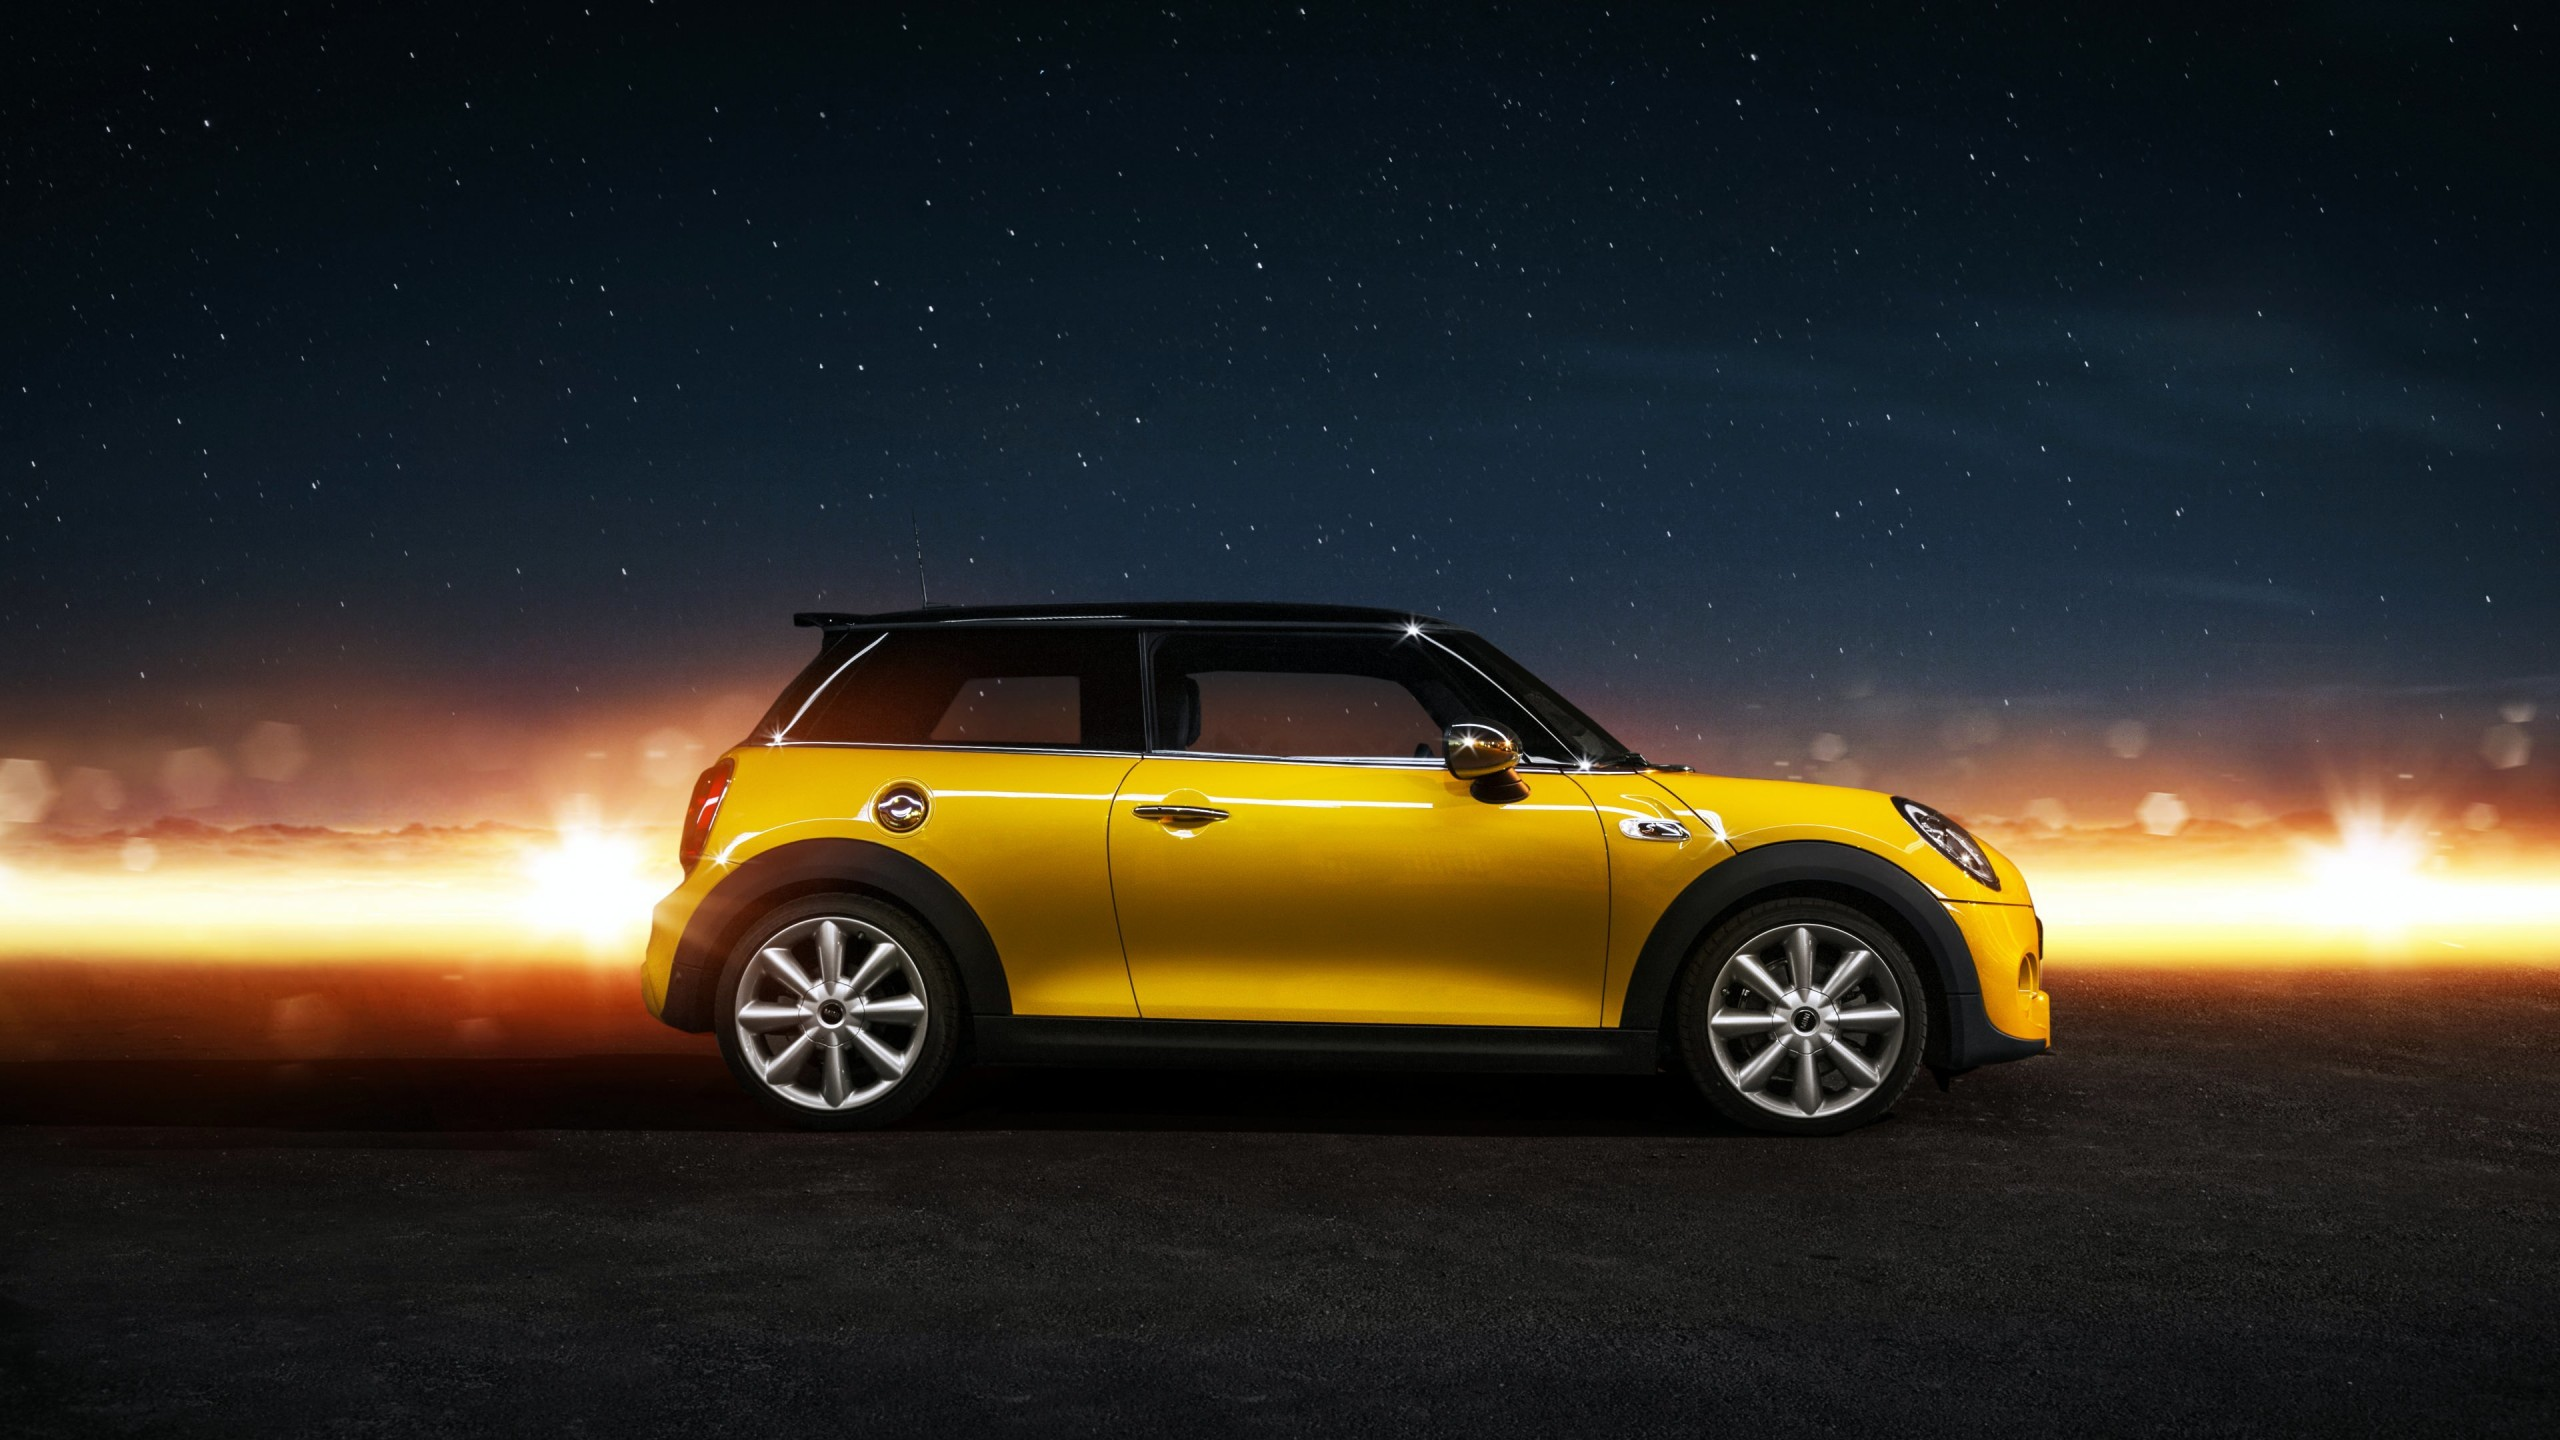 Yellow Mini Cooper S Wallpaper for Desktop 2560x1440